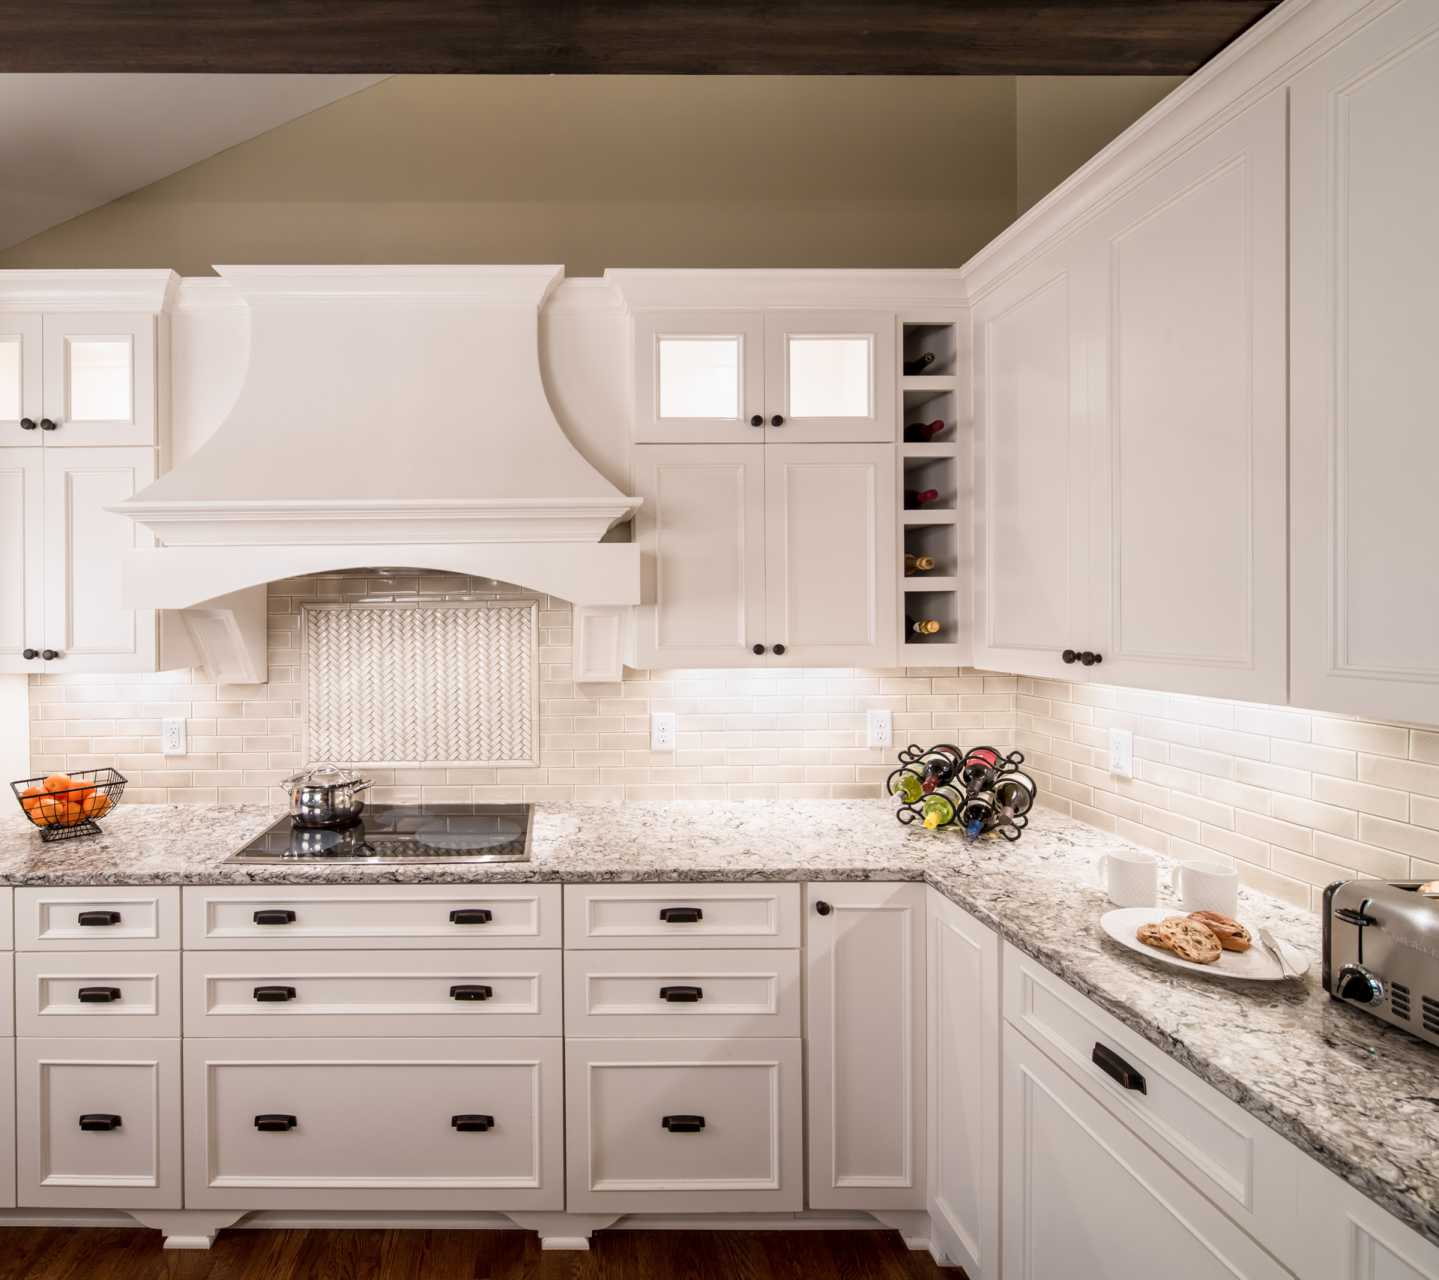 White Kitchen Cabinets And Countertops: Cambria Bellingham White Cabinets Backsplash Ideas